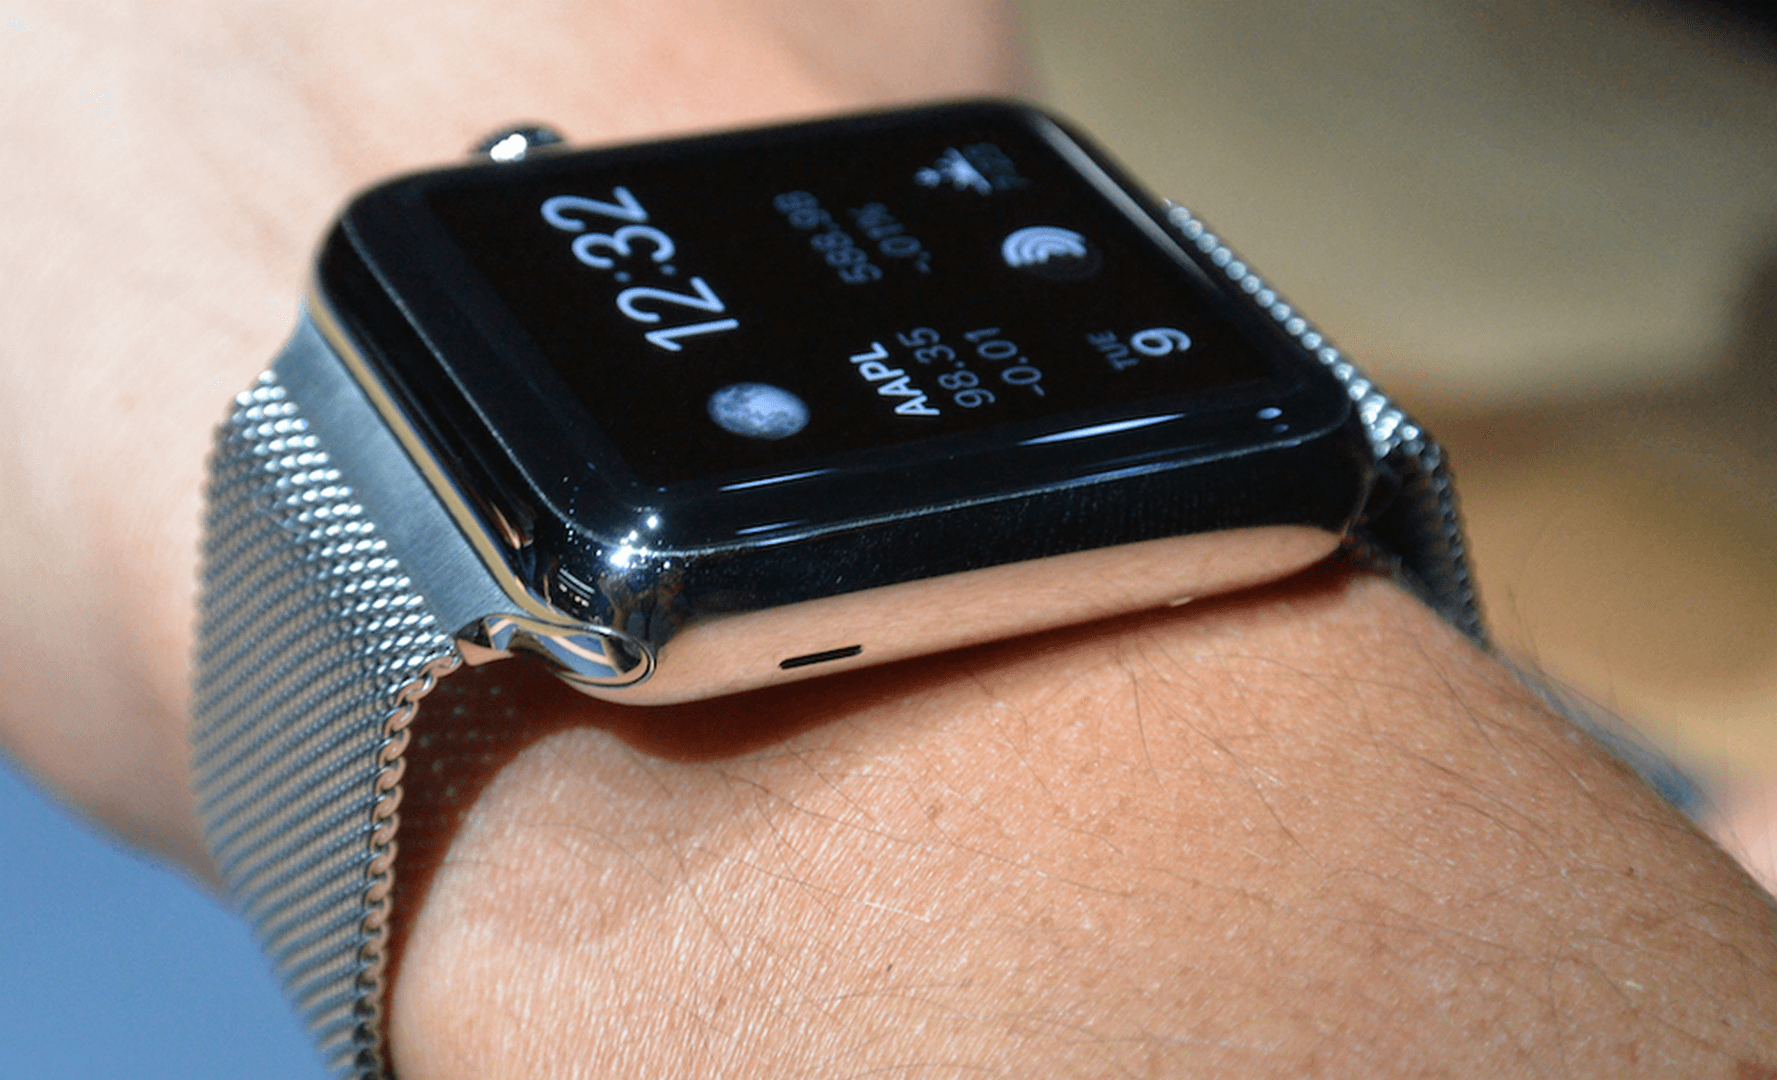 apple-watch-depannage-marseille-installation-assistance-conseil-formation-vente-entretien-virus-malware-sauvegarde-PC-Windows-Mac-Android-7